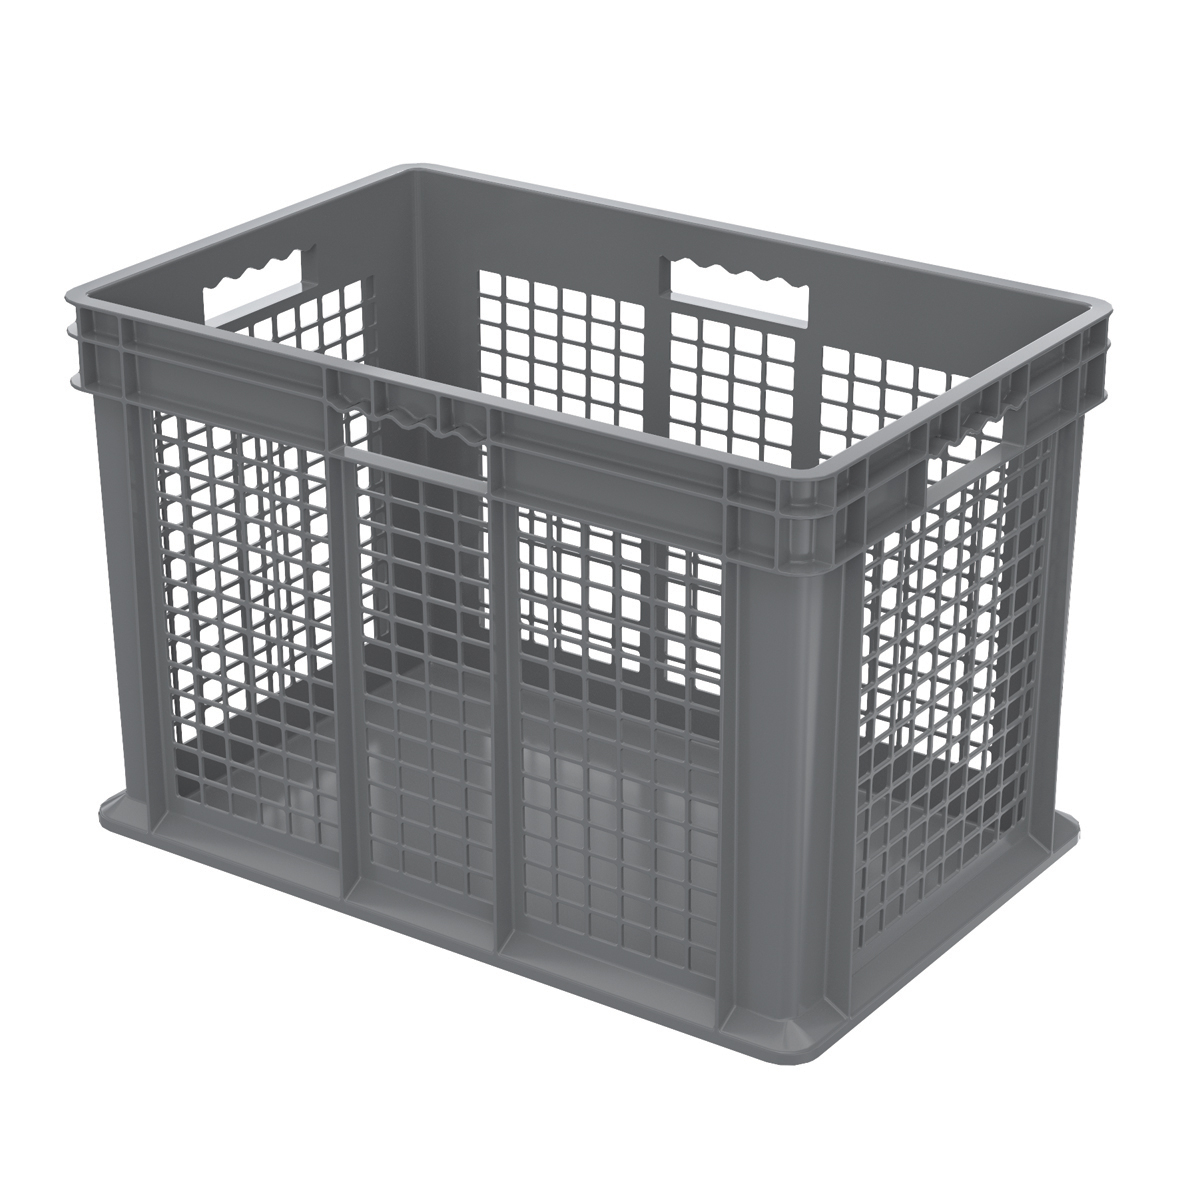 Straight Wall Container, Mesh/Solid 23-3/4 x 15-3/4 x 16-1/8, Gray (37676GREY).  This item sold in carton quantities of 2.